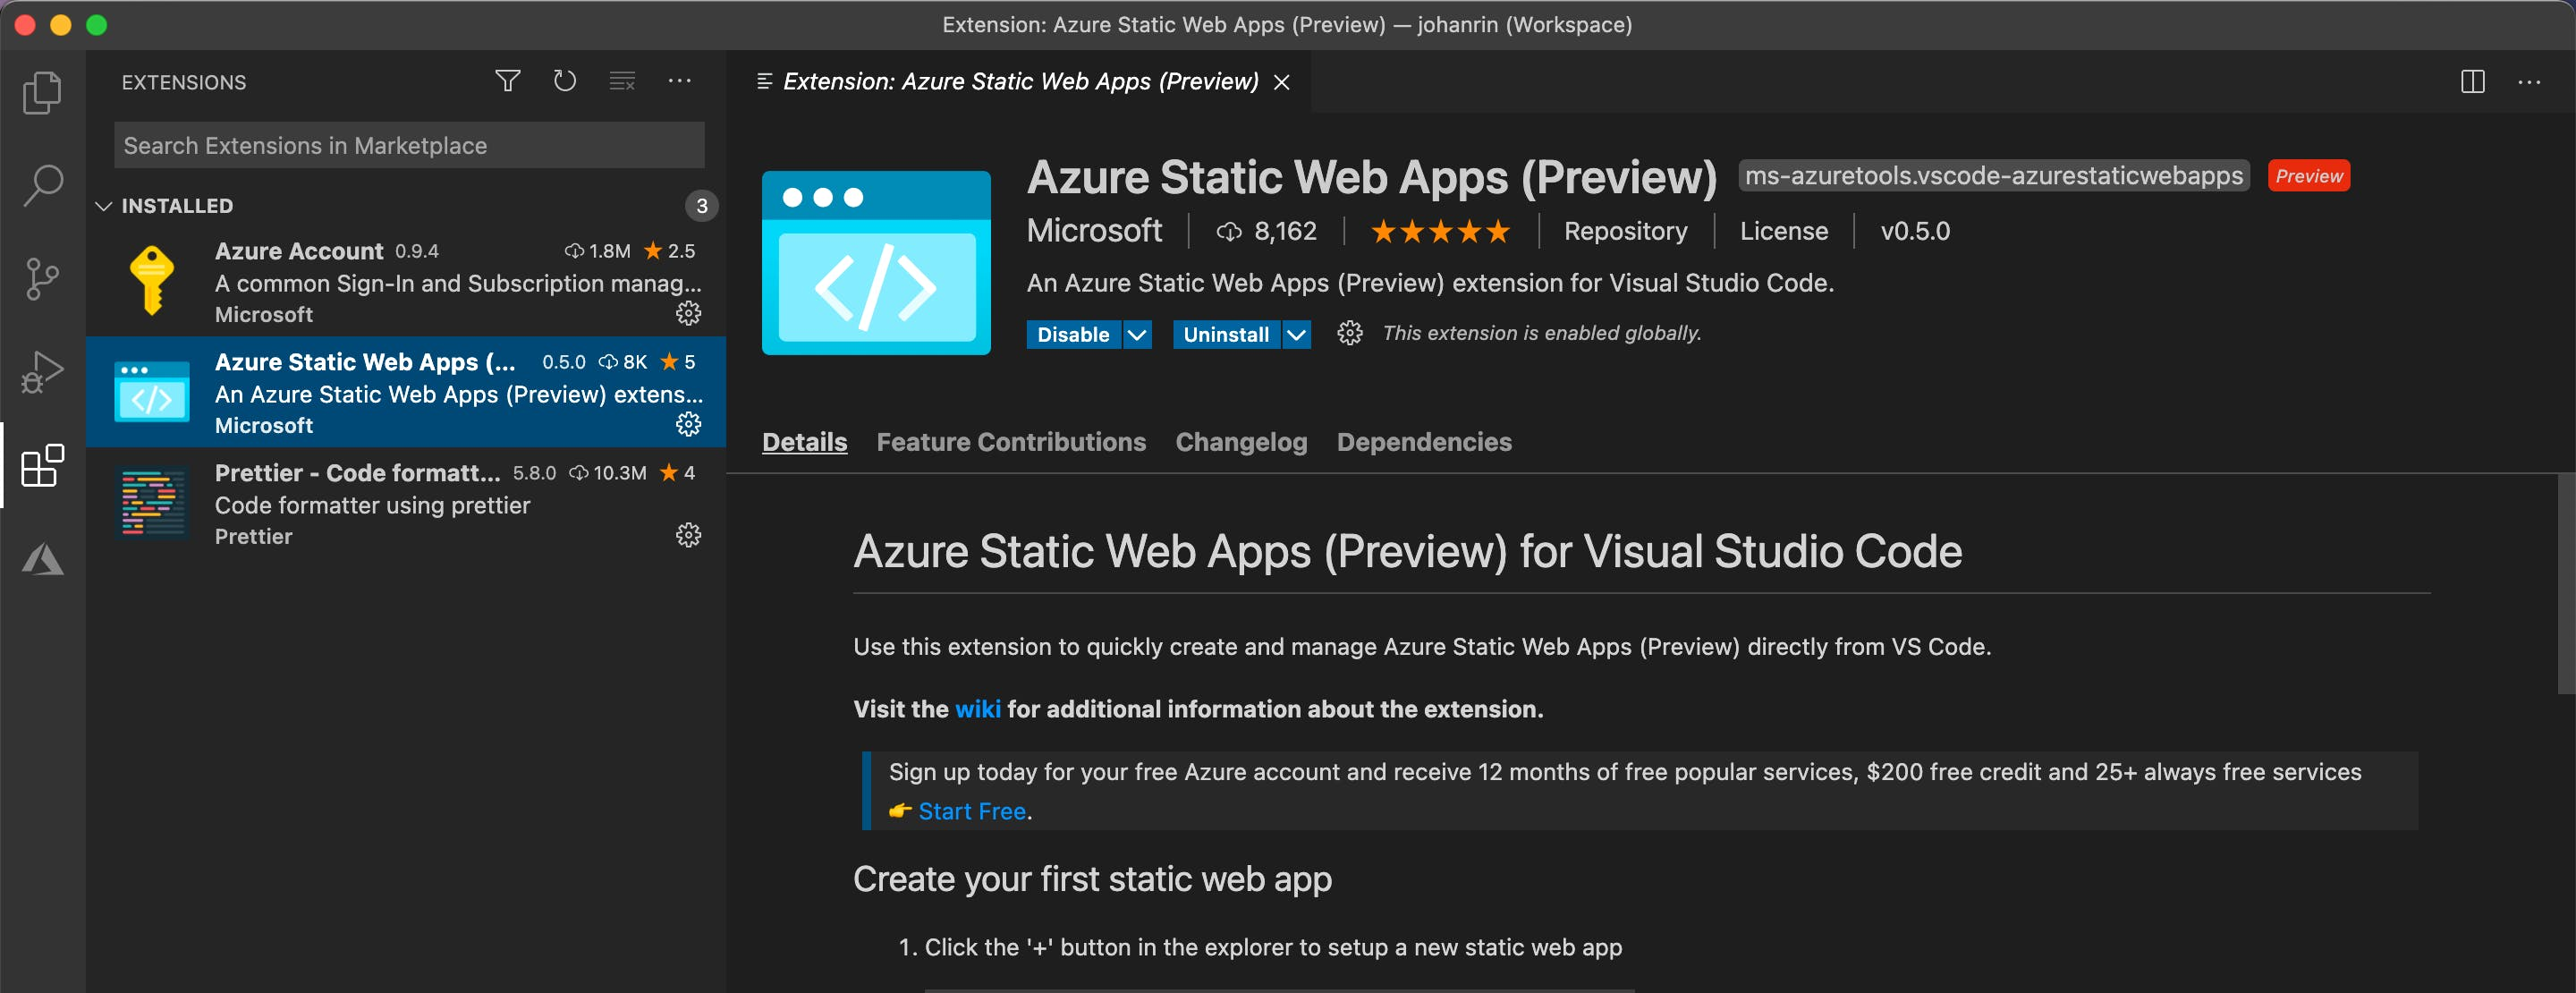 Azure Static Web Apps extension